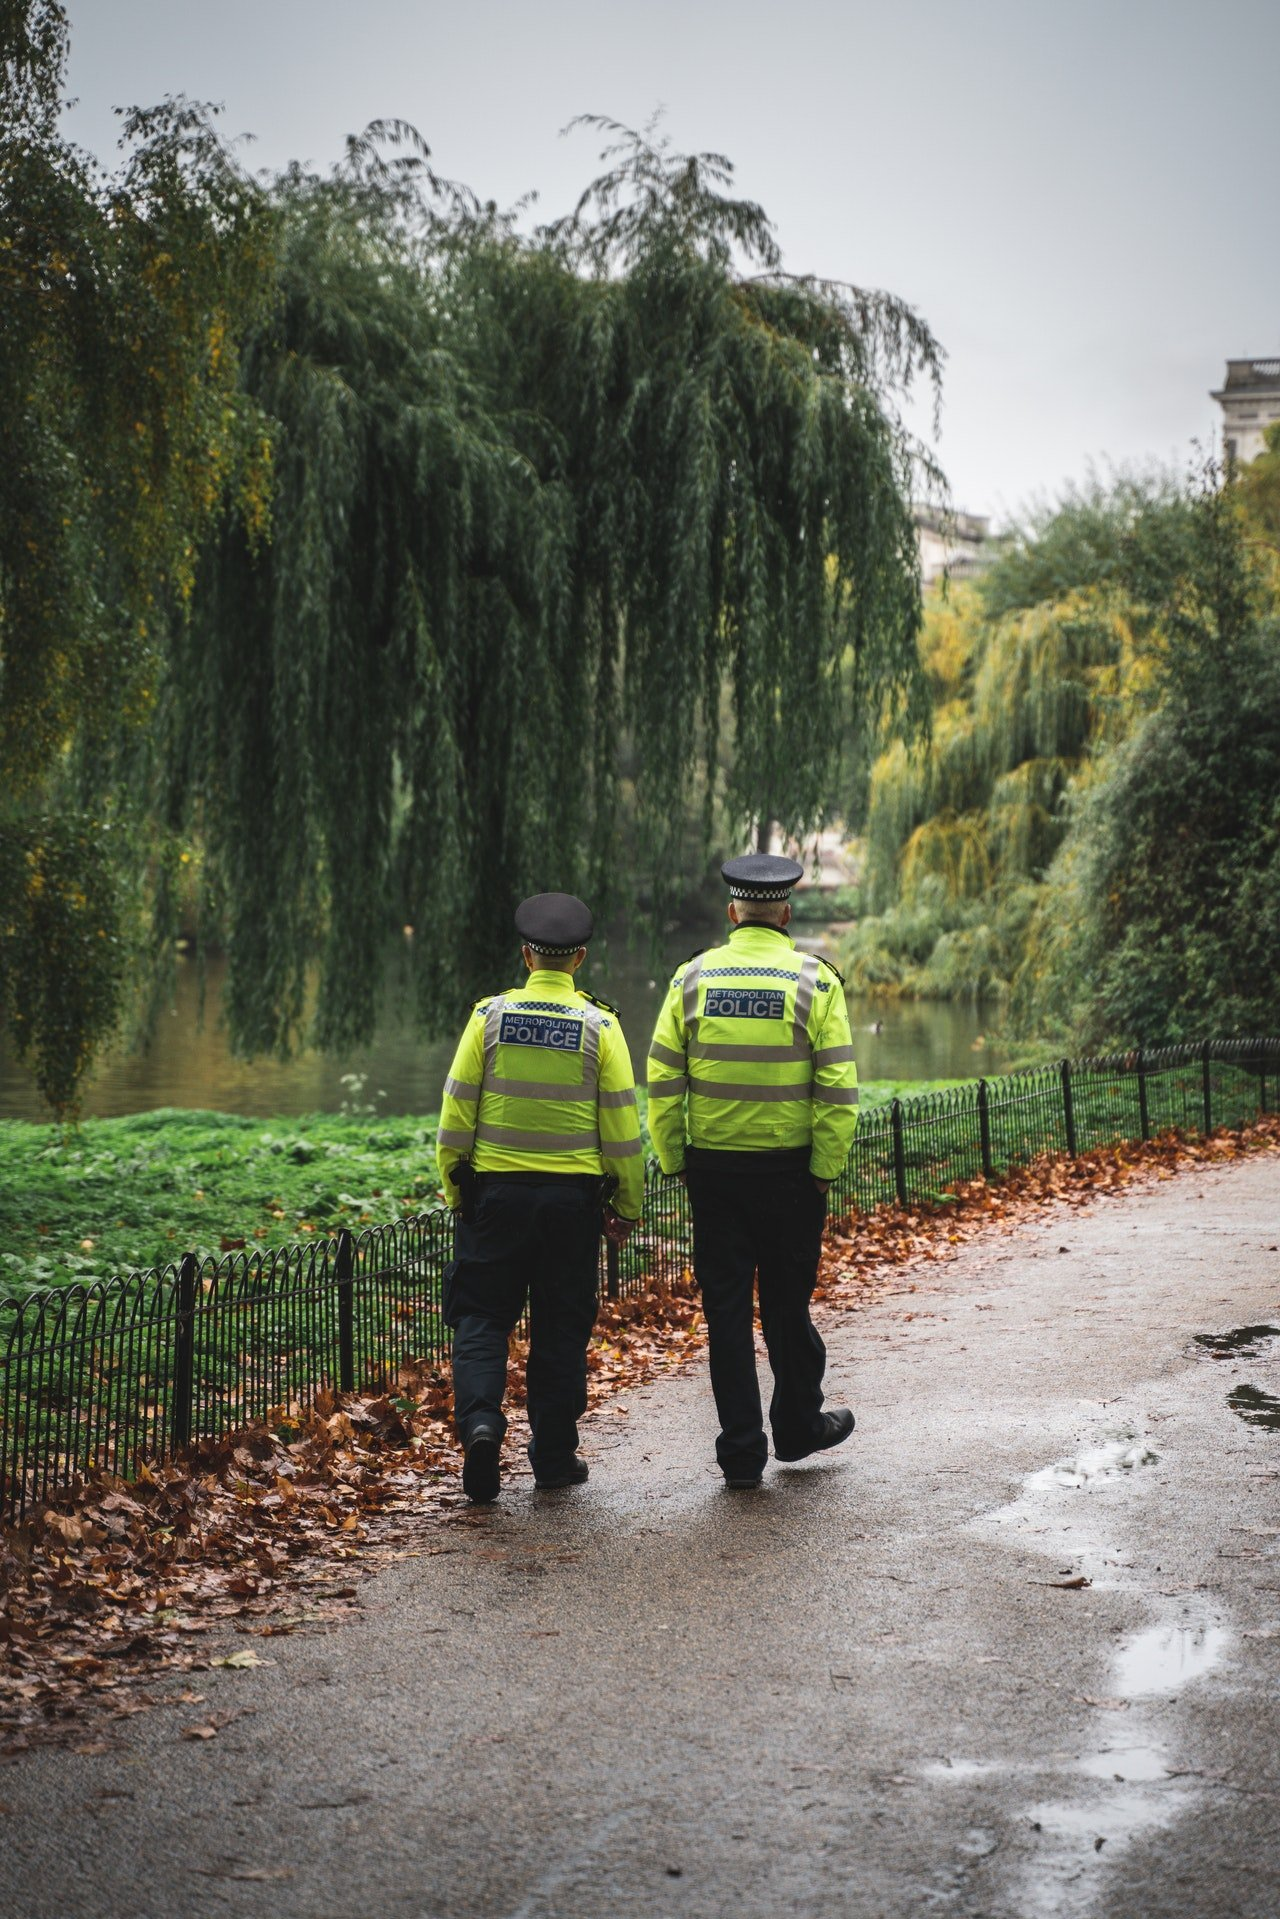 Two police officers walking on the road   Photo: Pexels